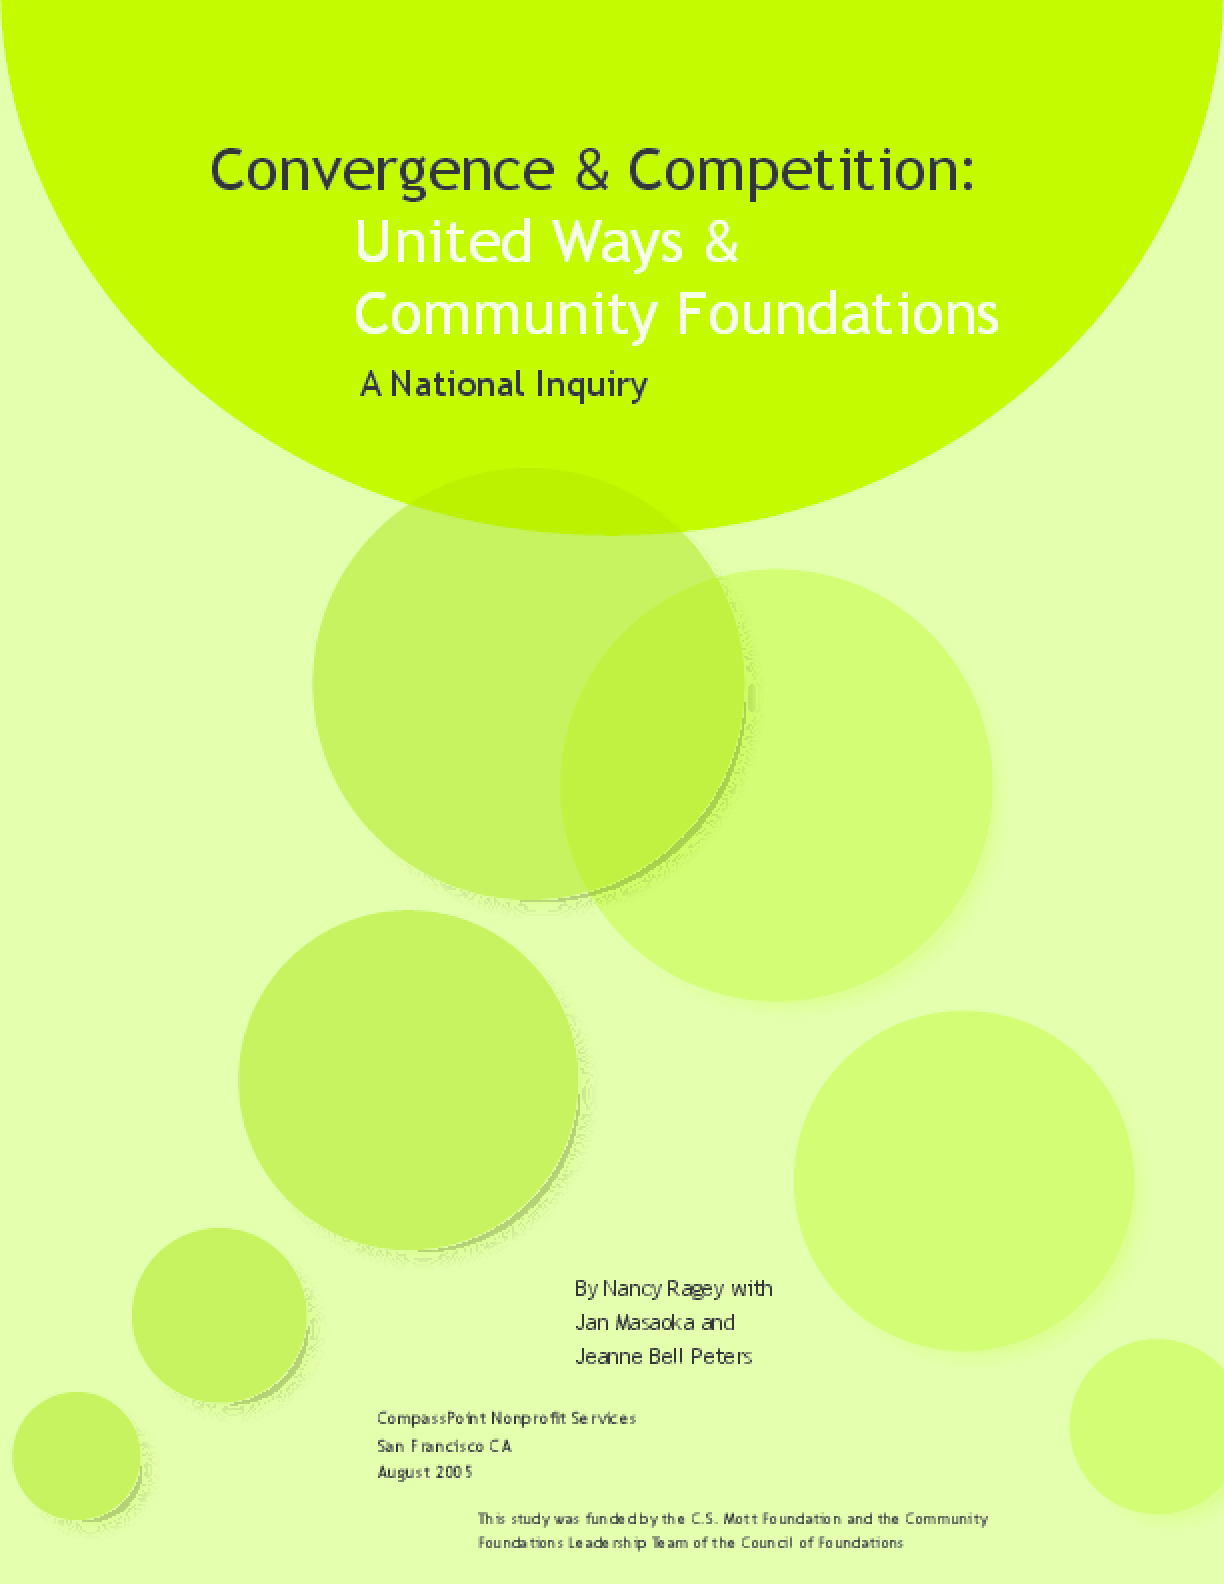 Convergence & Competition: United Ways and Community Foundations - A National Inquiry